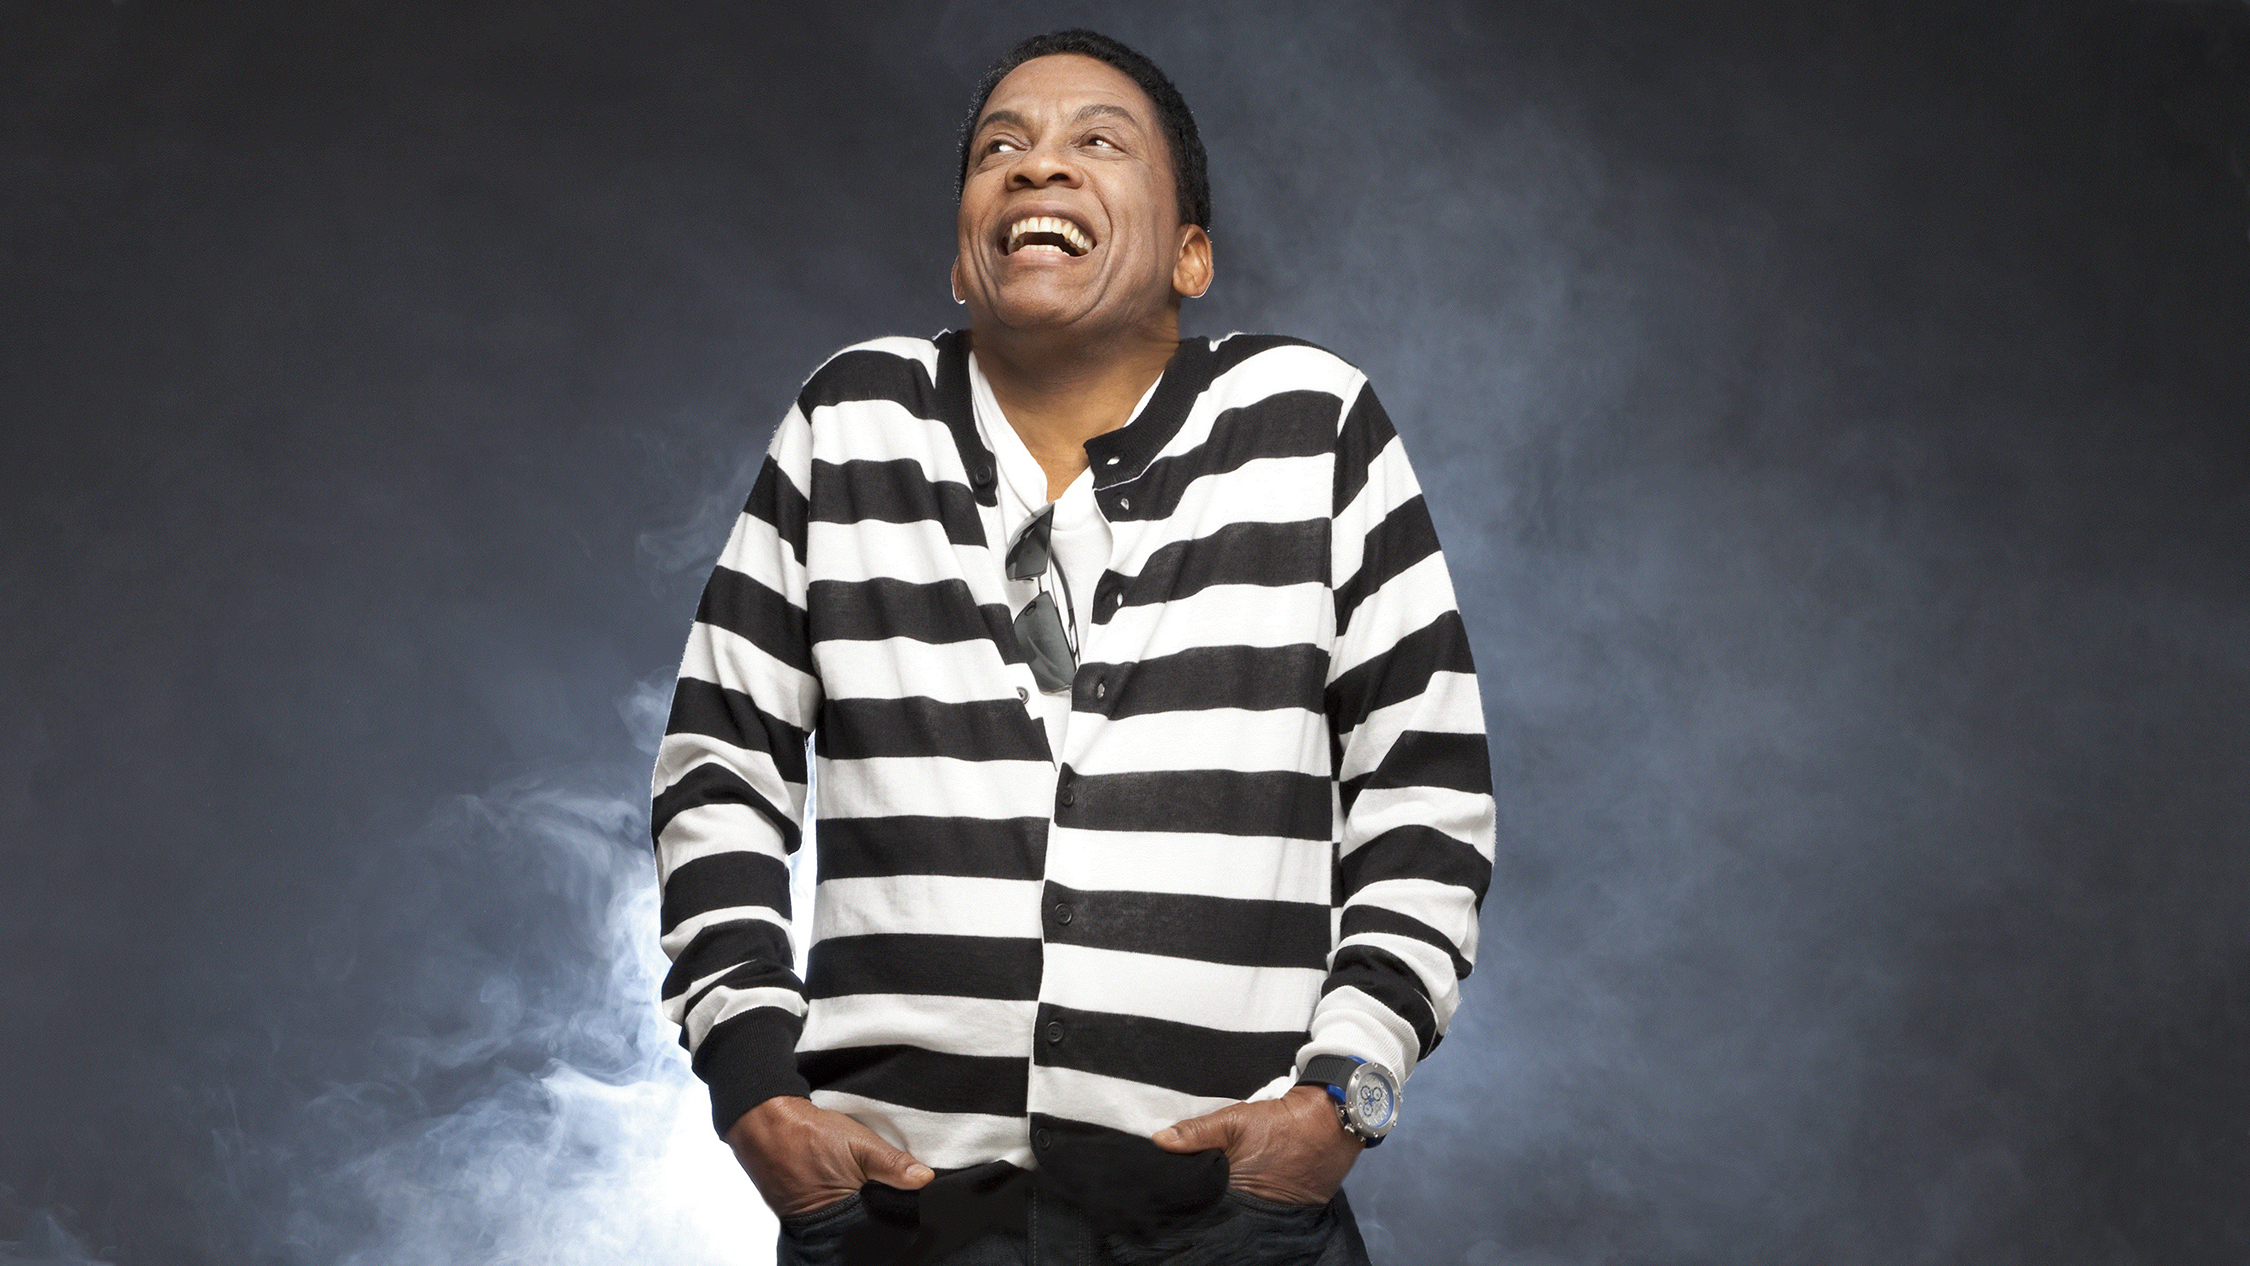 Herbie Hancock in a striped shirt laughing.